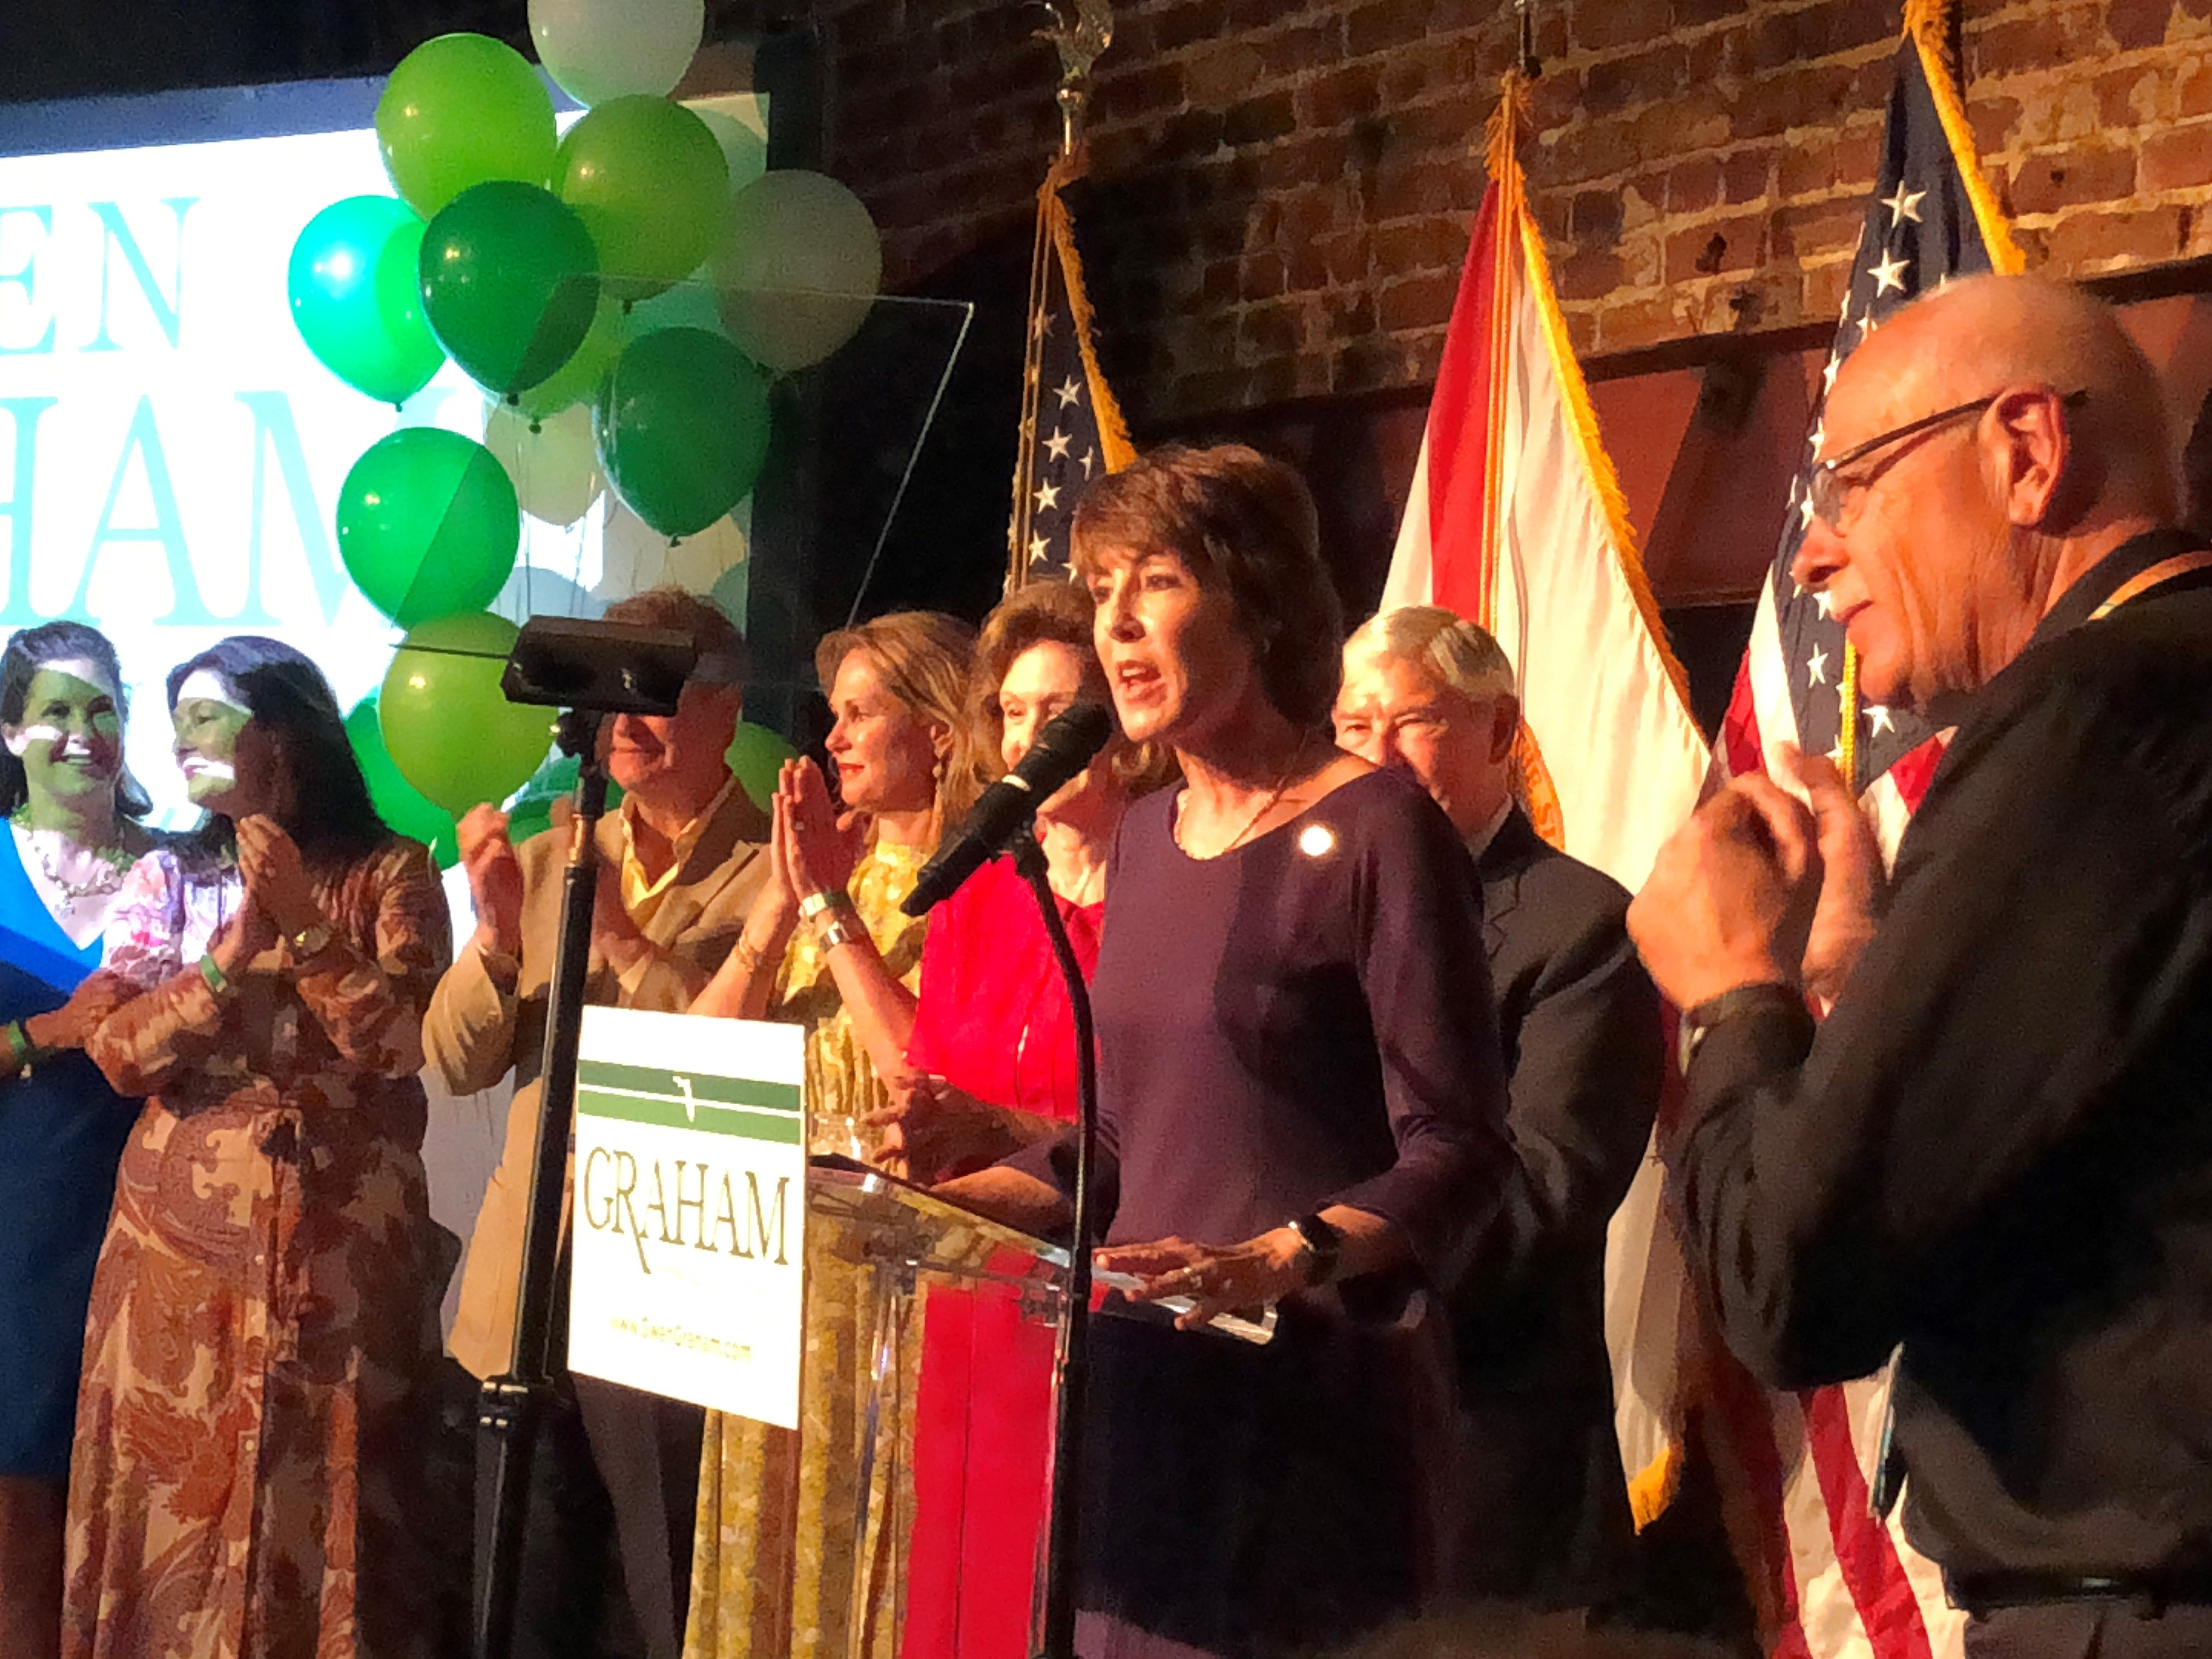 Gwen Graham expresses her support for Andrew Gillum, calling him a friend and encouraging her supporters to back Gillum in the 2018 gubernatorial election in November.